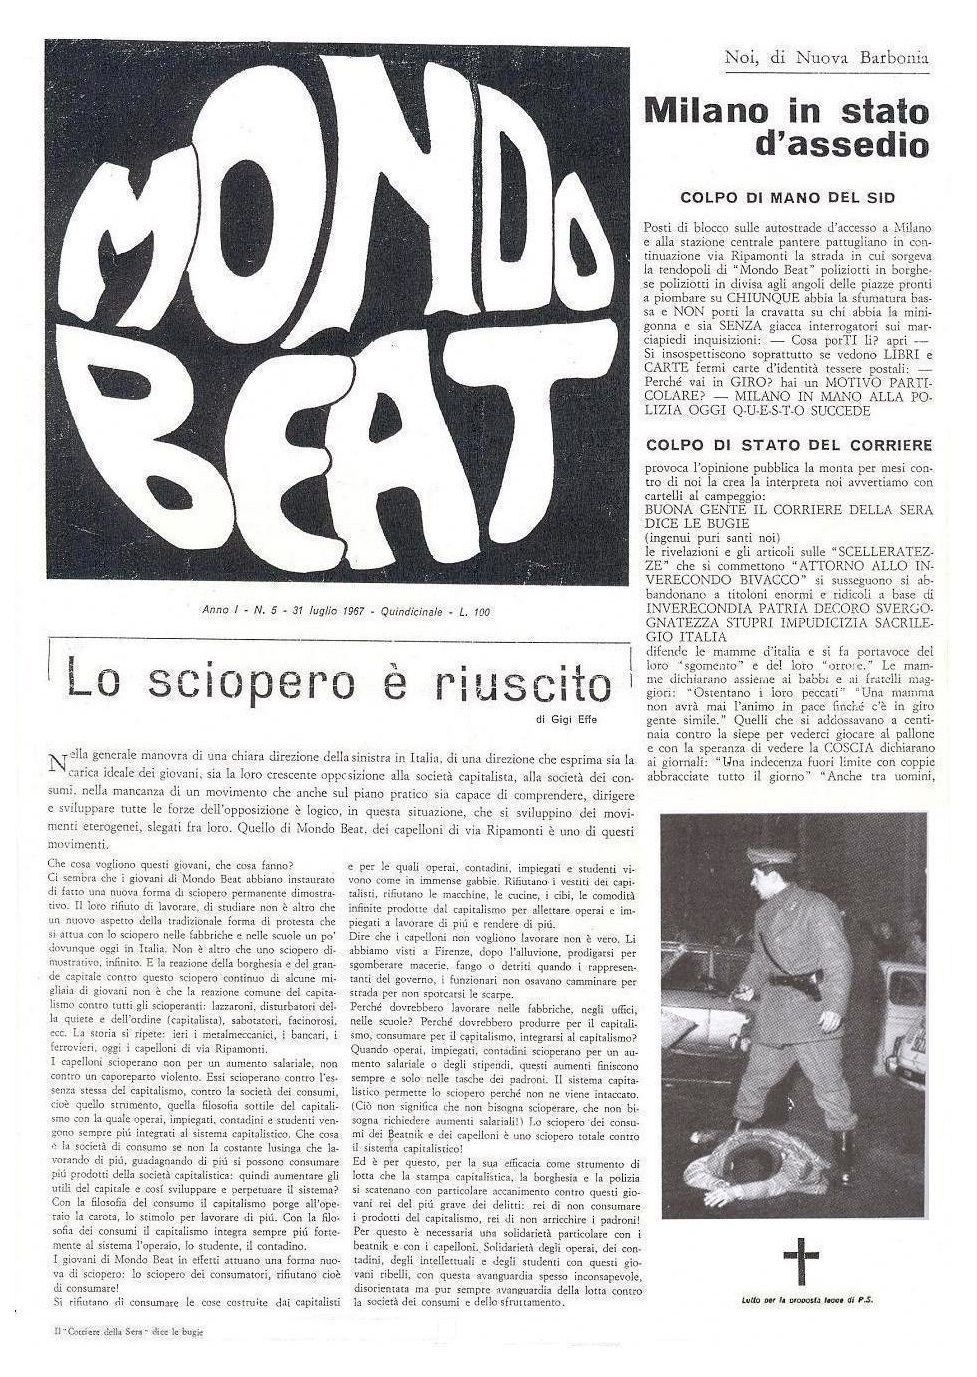 7th issue of the magazine Mondo Beat - page 1